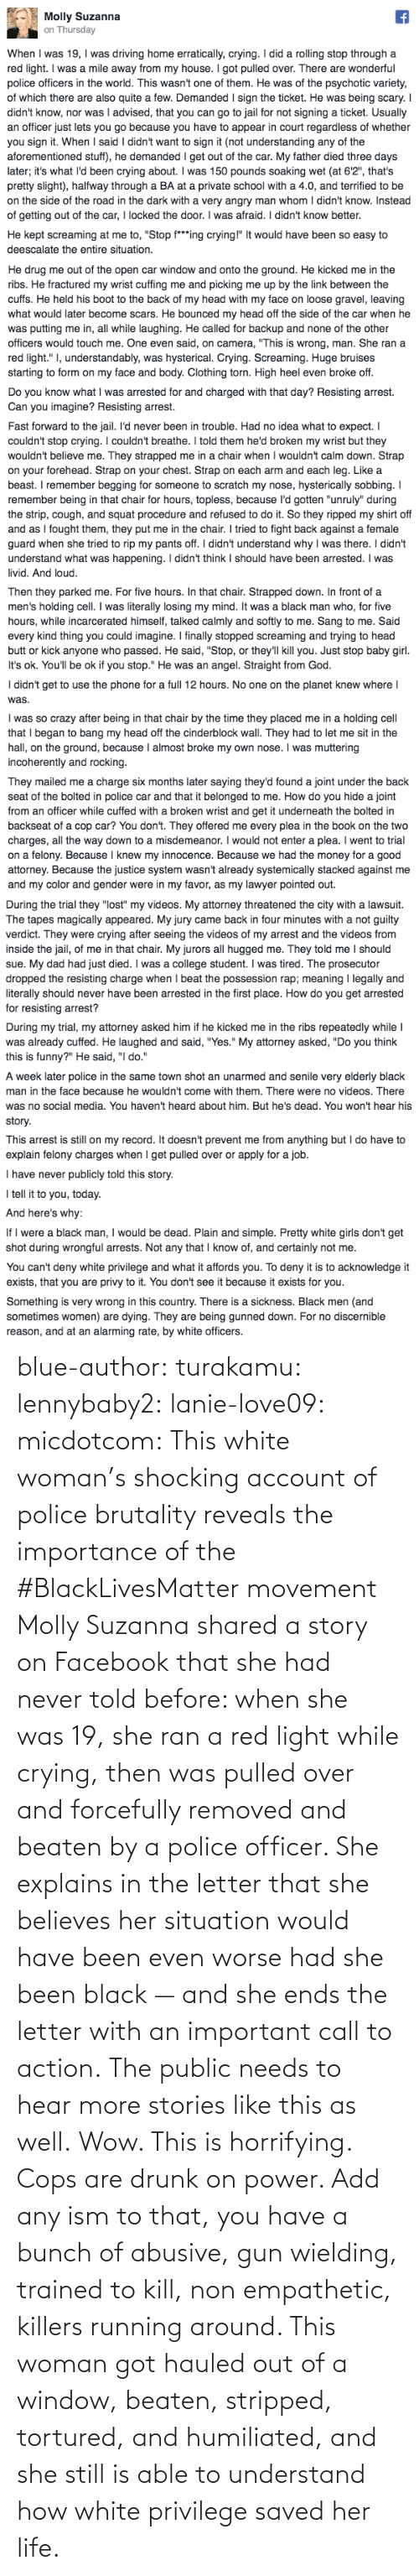 call: blue-author: turakamu:  lennybaby2:  lanie-love09:  micdotcom:  This white woman's shocking account of police brutality reveals the importance of the #BlackLivesMatter movement Molly Suzanna shared a story on Facebook that she had never told before: when she was 19, she ran a red light while crying, then was pulled over and forcefully removed and beaten by a police officer. She explains in the letter that she believes her situation would have been even worse had she been black — and she ends the letter with an important call to action.  The public needs to hear more stories like this as well.  Wow. This is horrifying.  Cops are drunk on power. Add any ism to that, you have a bunch of abusive, gun wielding, trained to kill, non empathetic, killers running around.    This woman got hauled out of a window, beaten, stripped, tortured, and humiliated, and she still is able to understand how white privilege saved her life.